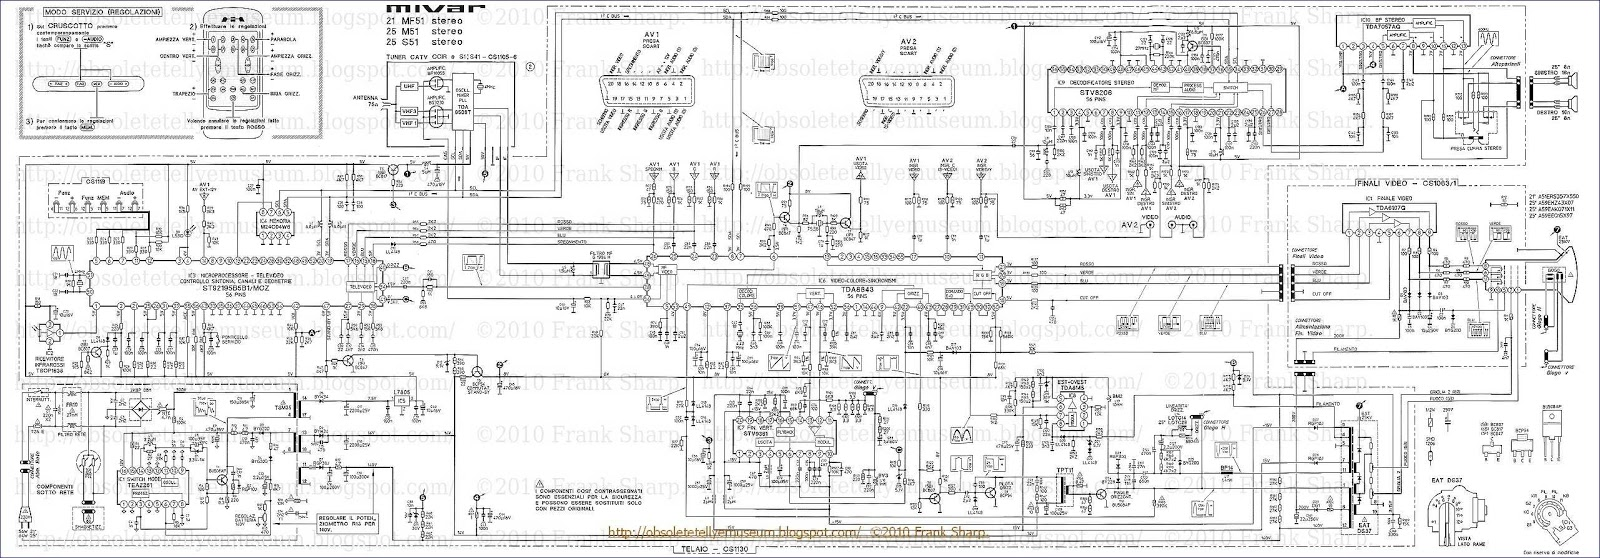 cvbs wiring diagram composite video input article about